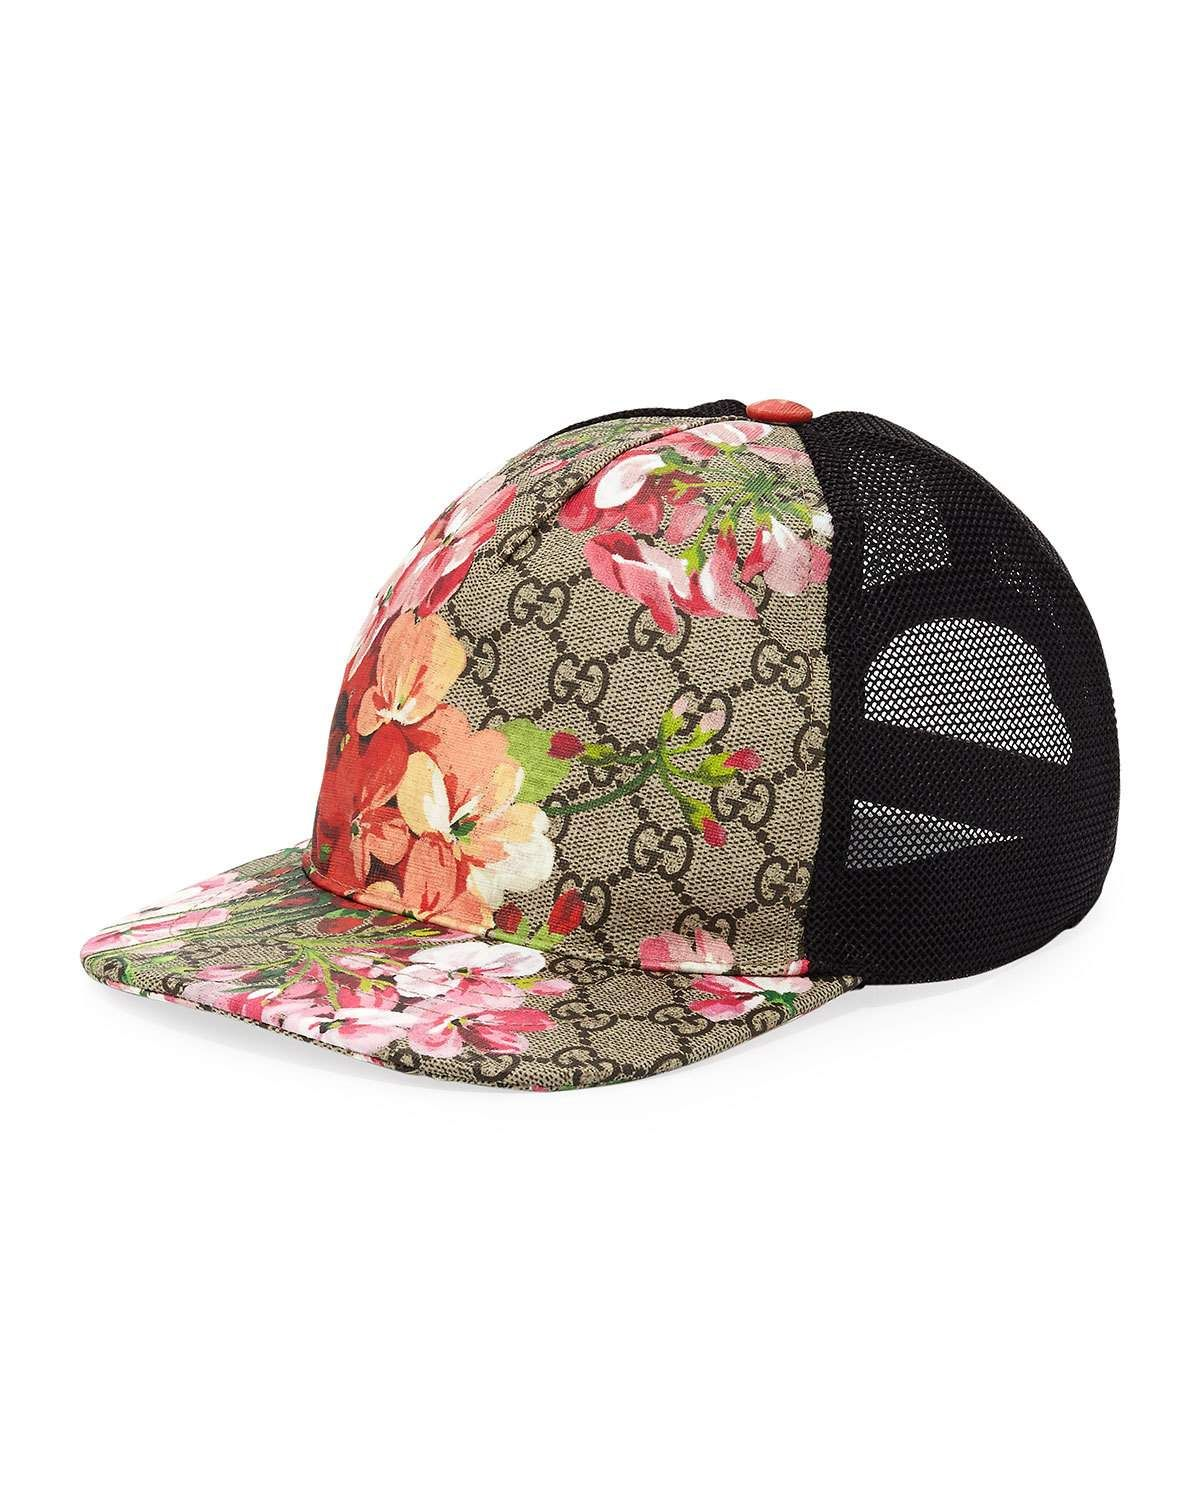 131e4e41d2b46 Gucci Blooms GG Supreme Canvas Baseball Cap